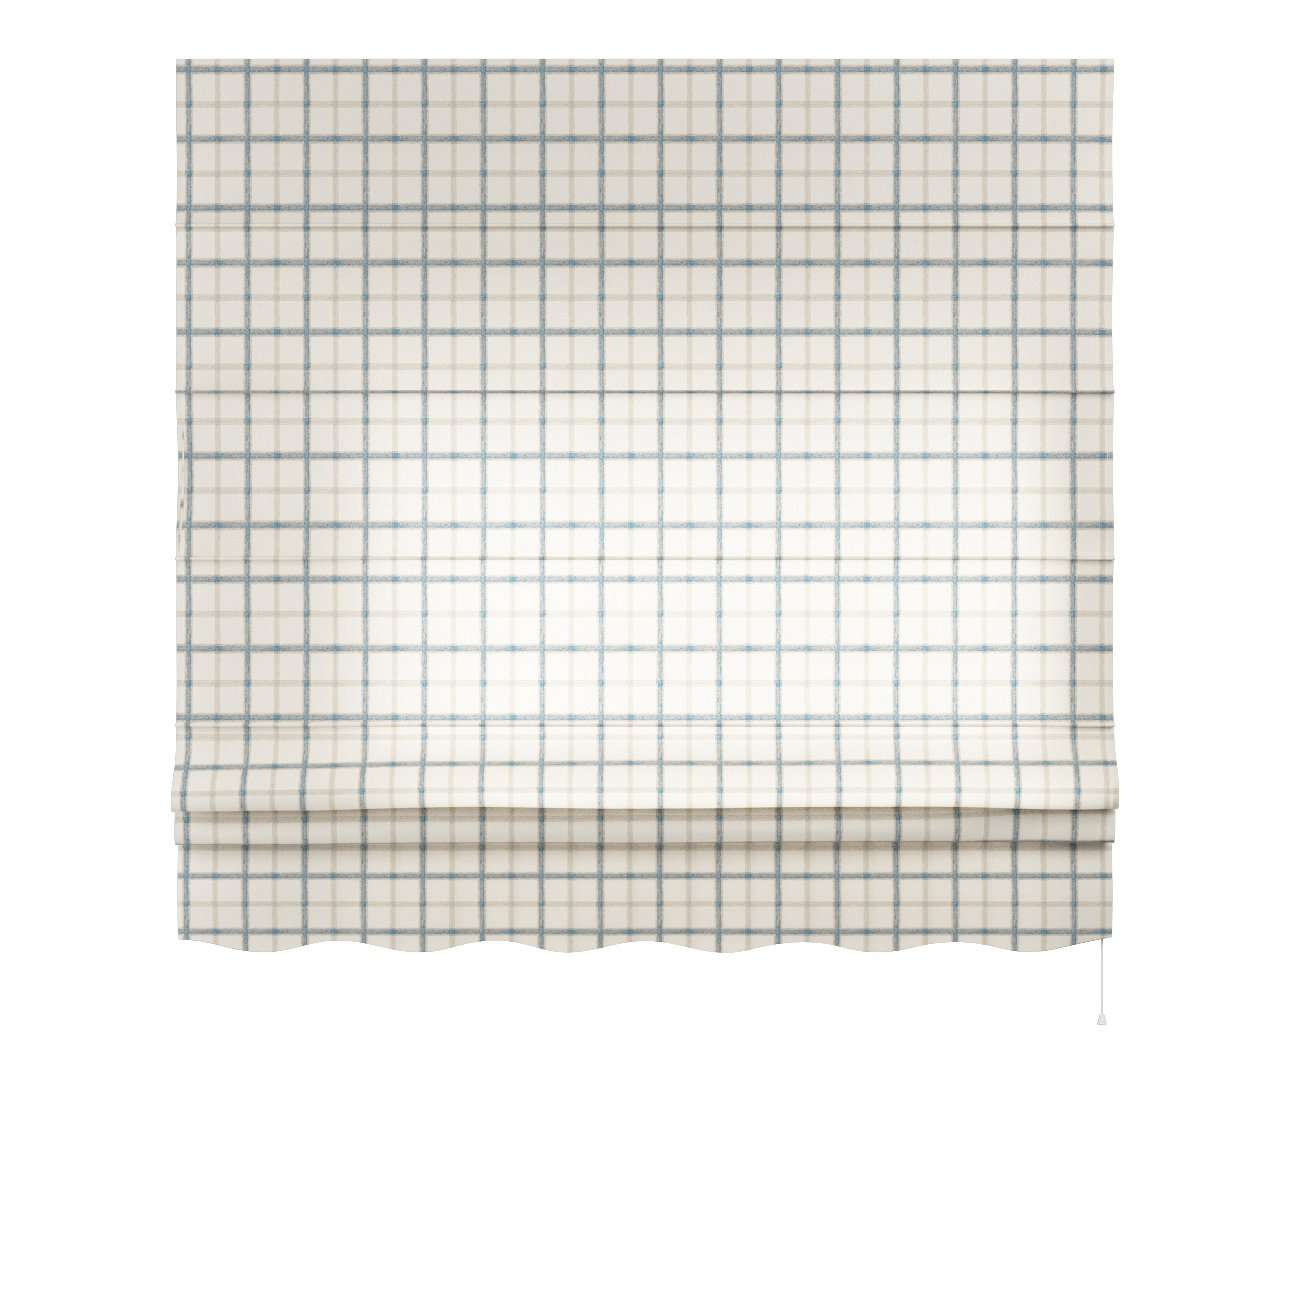 Florence roman blind  80 × 170 cm (31.5 × 67 inch) in collection Avinon, fabric: 131-66